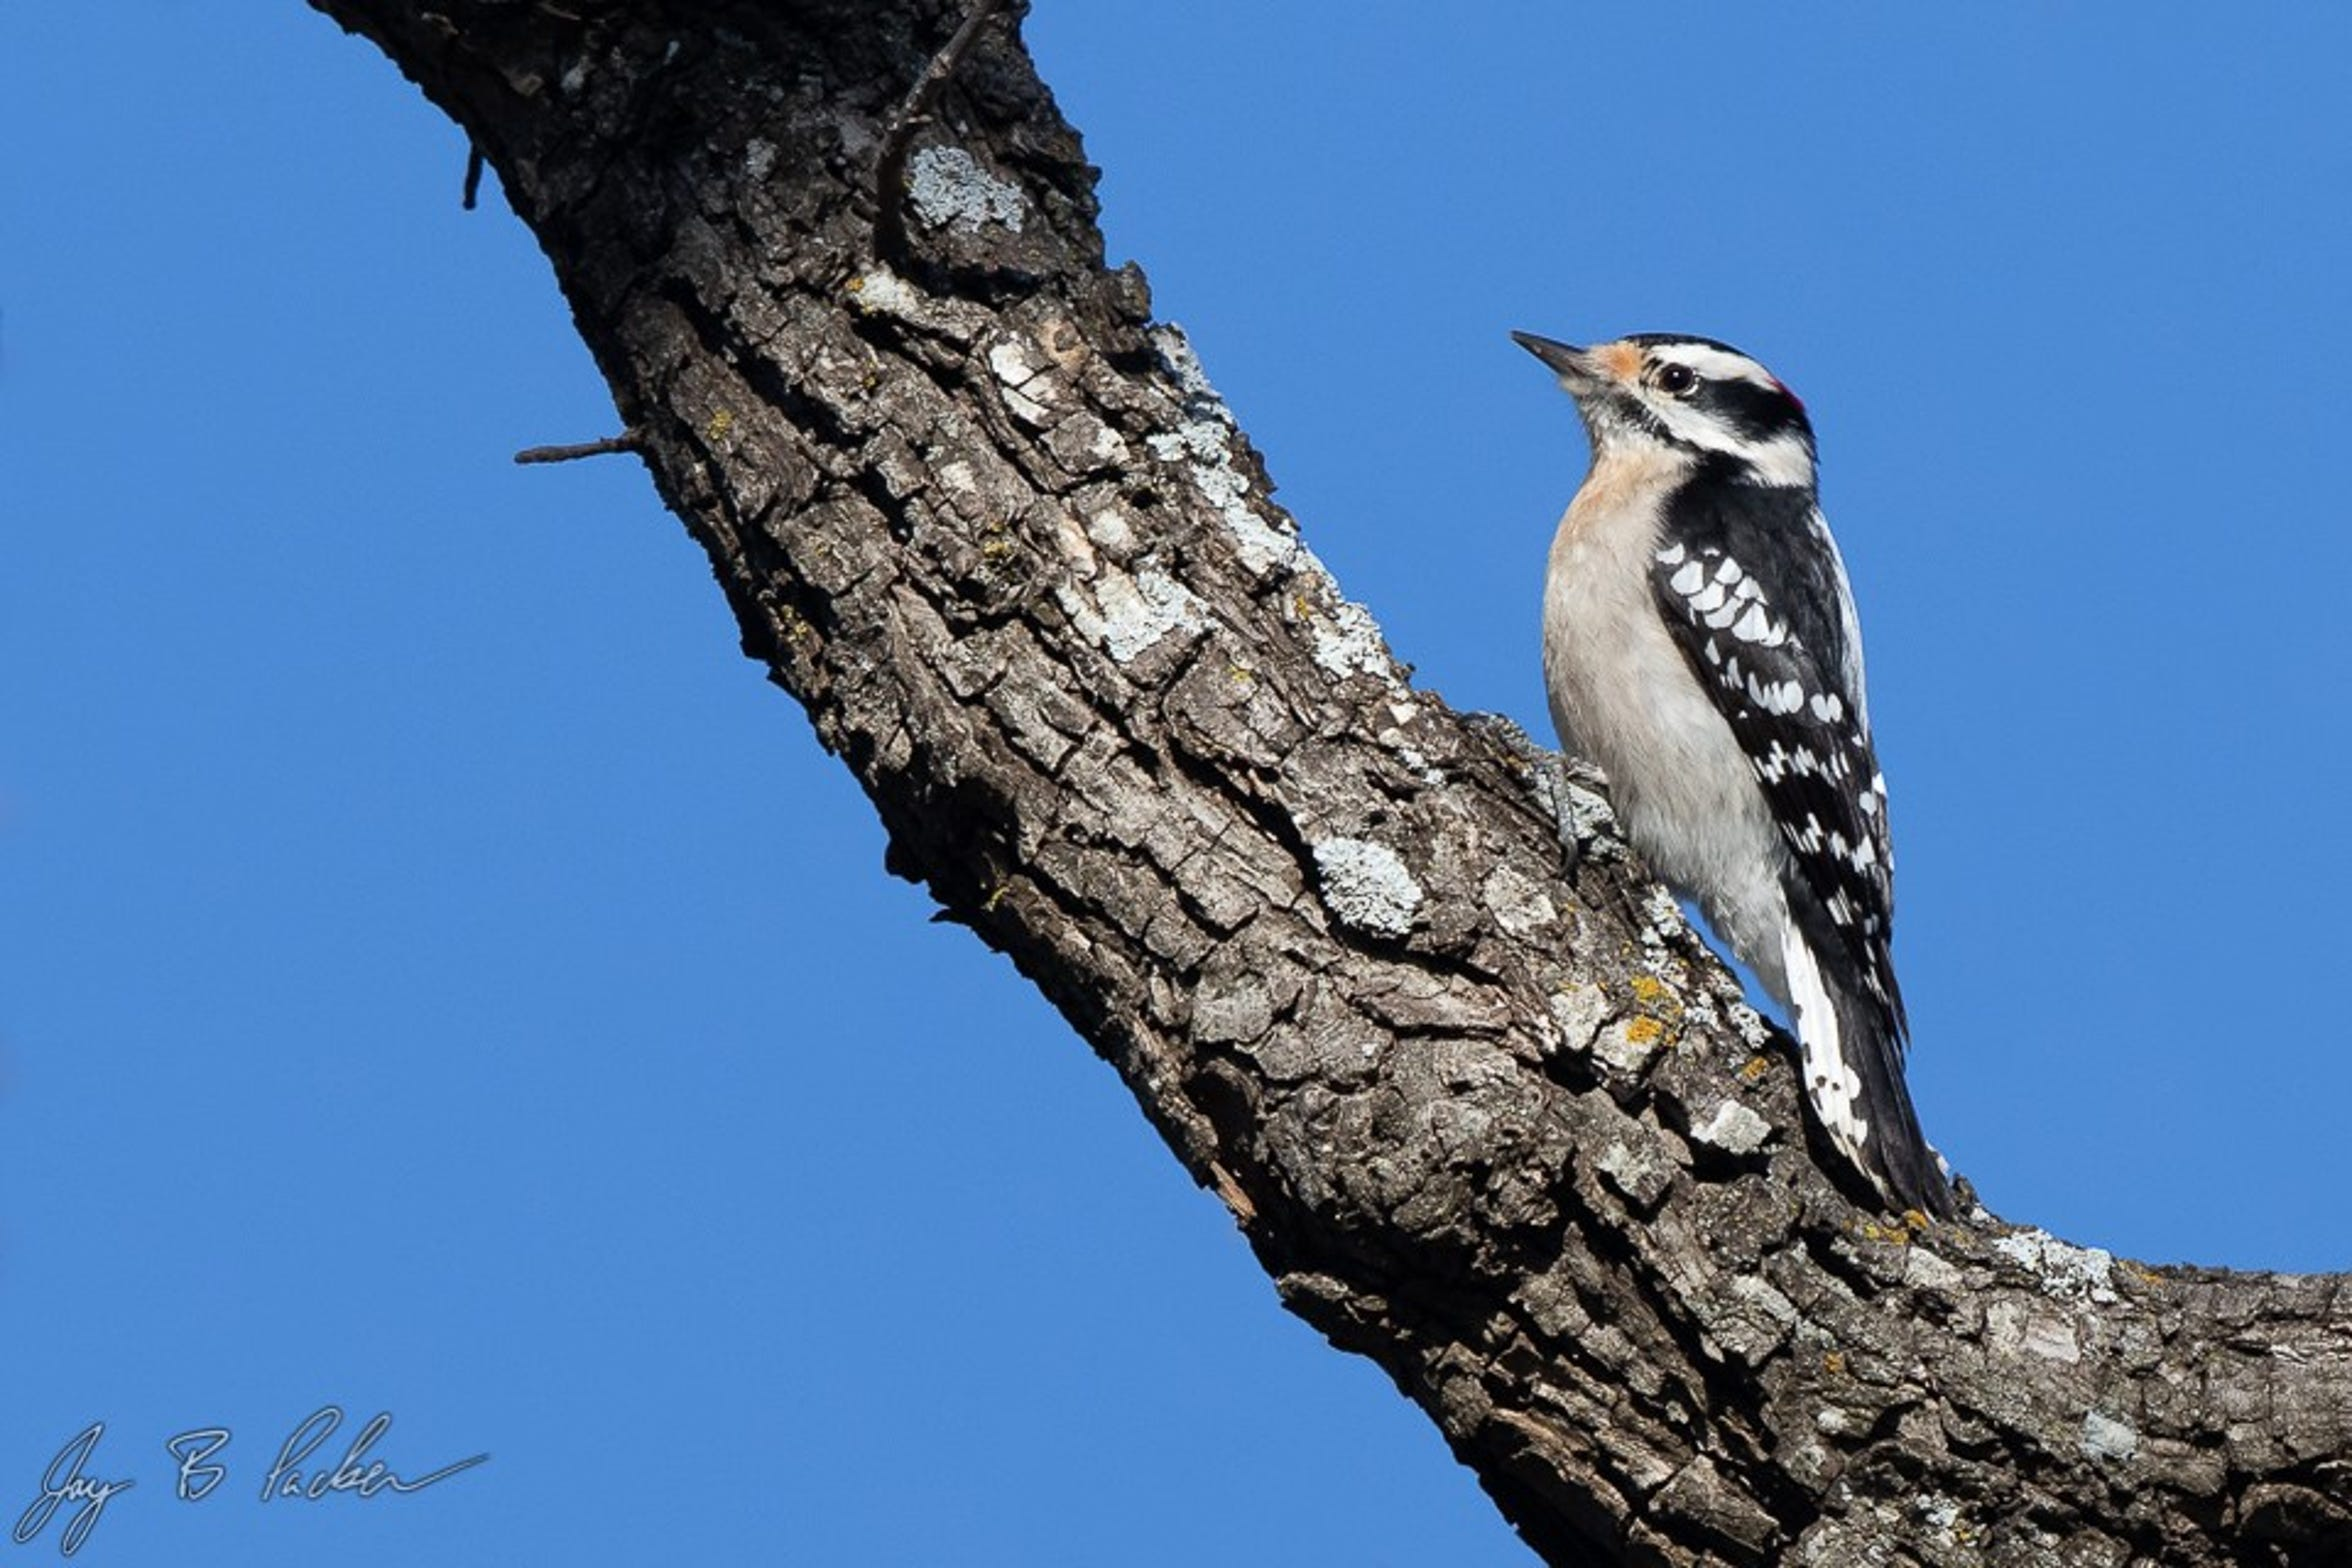 A Downy Woodpecker at Abilene State Park. This little woodpecker likes taller trees like pecans.